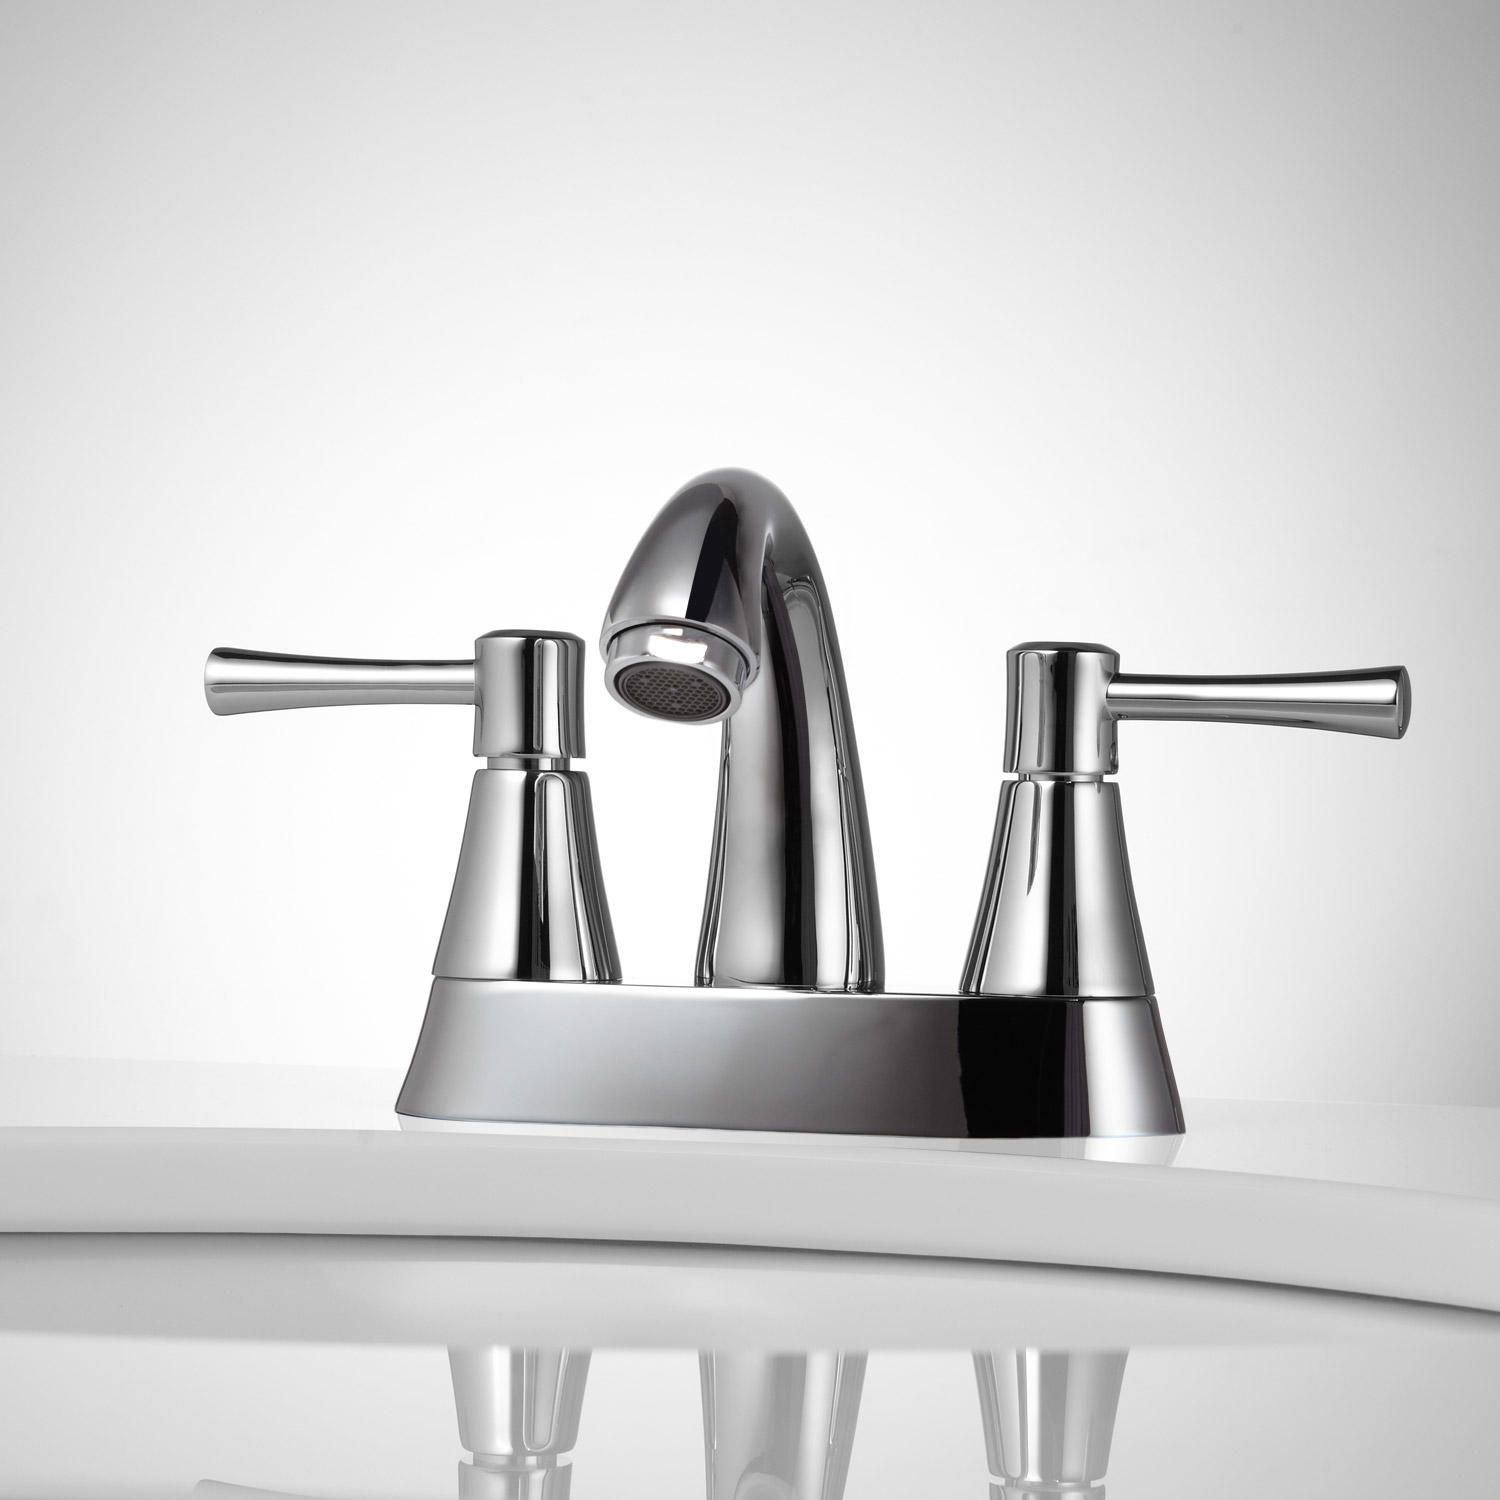 Rondo Centerset Bathroom Faucet | Faucet, Chrome and Bathroom vanities